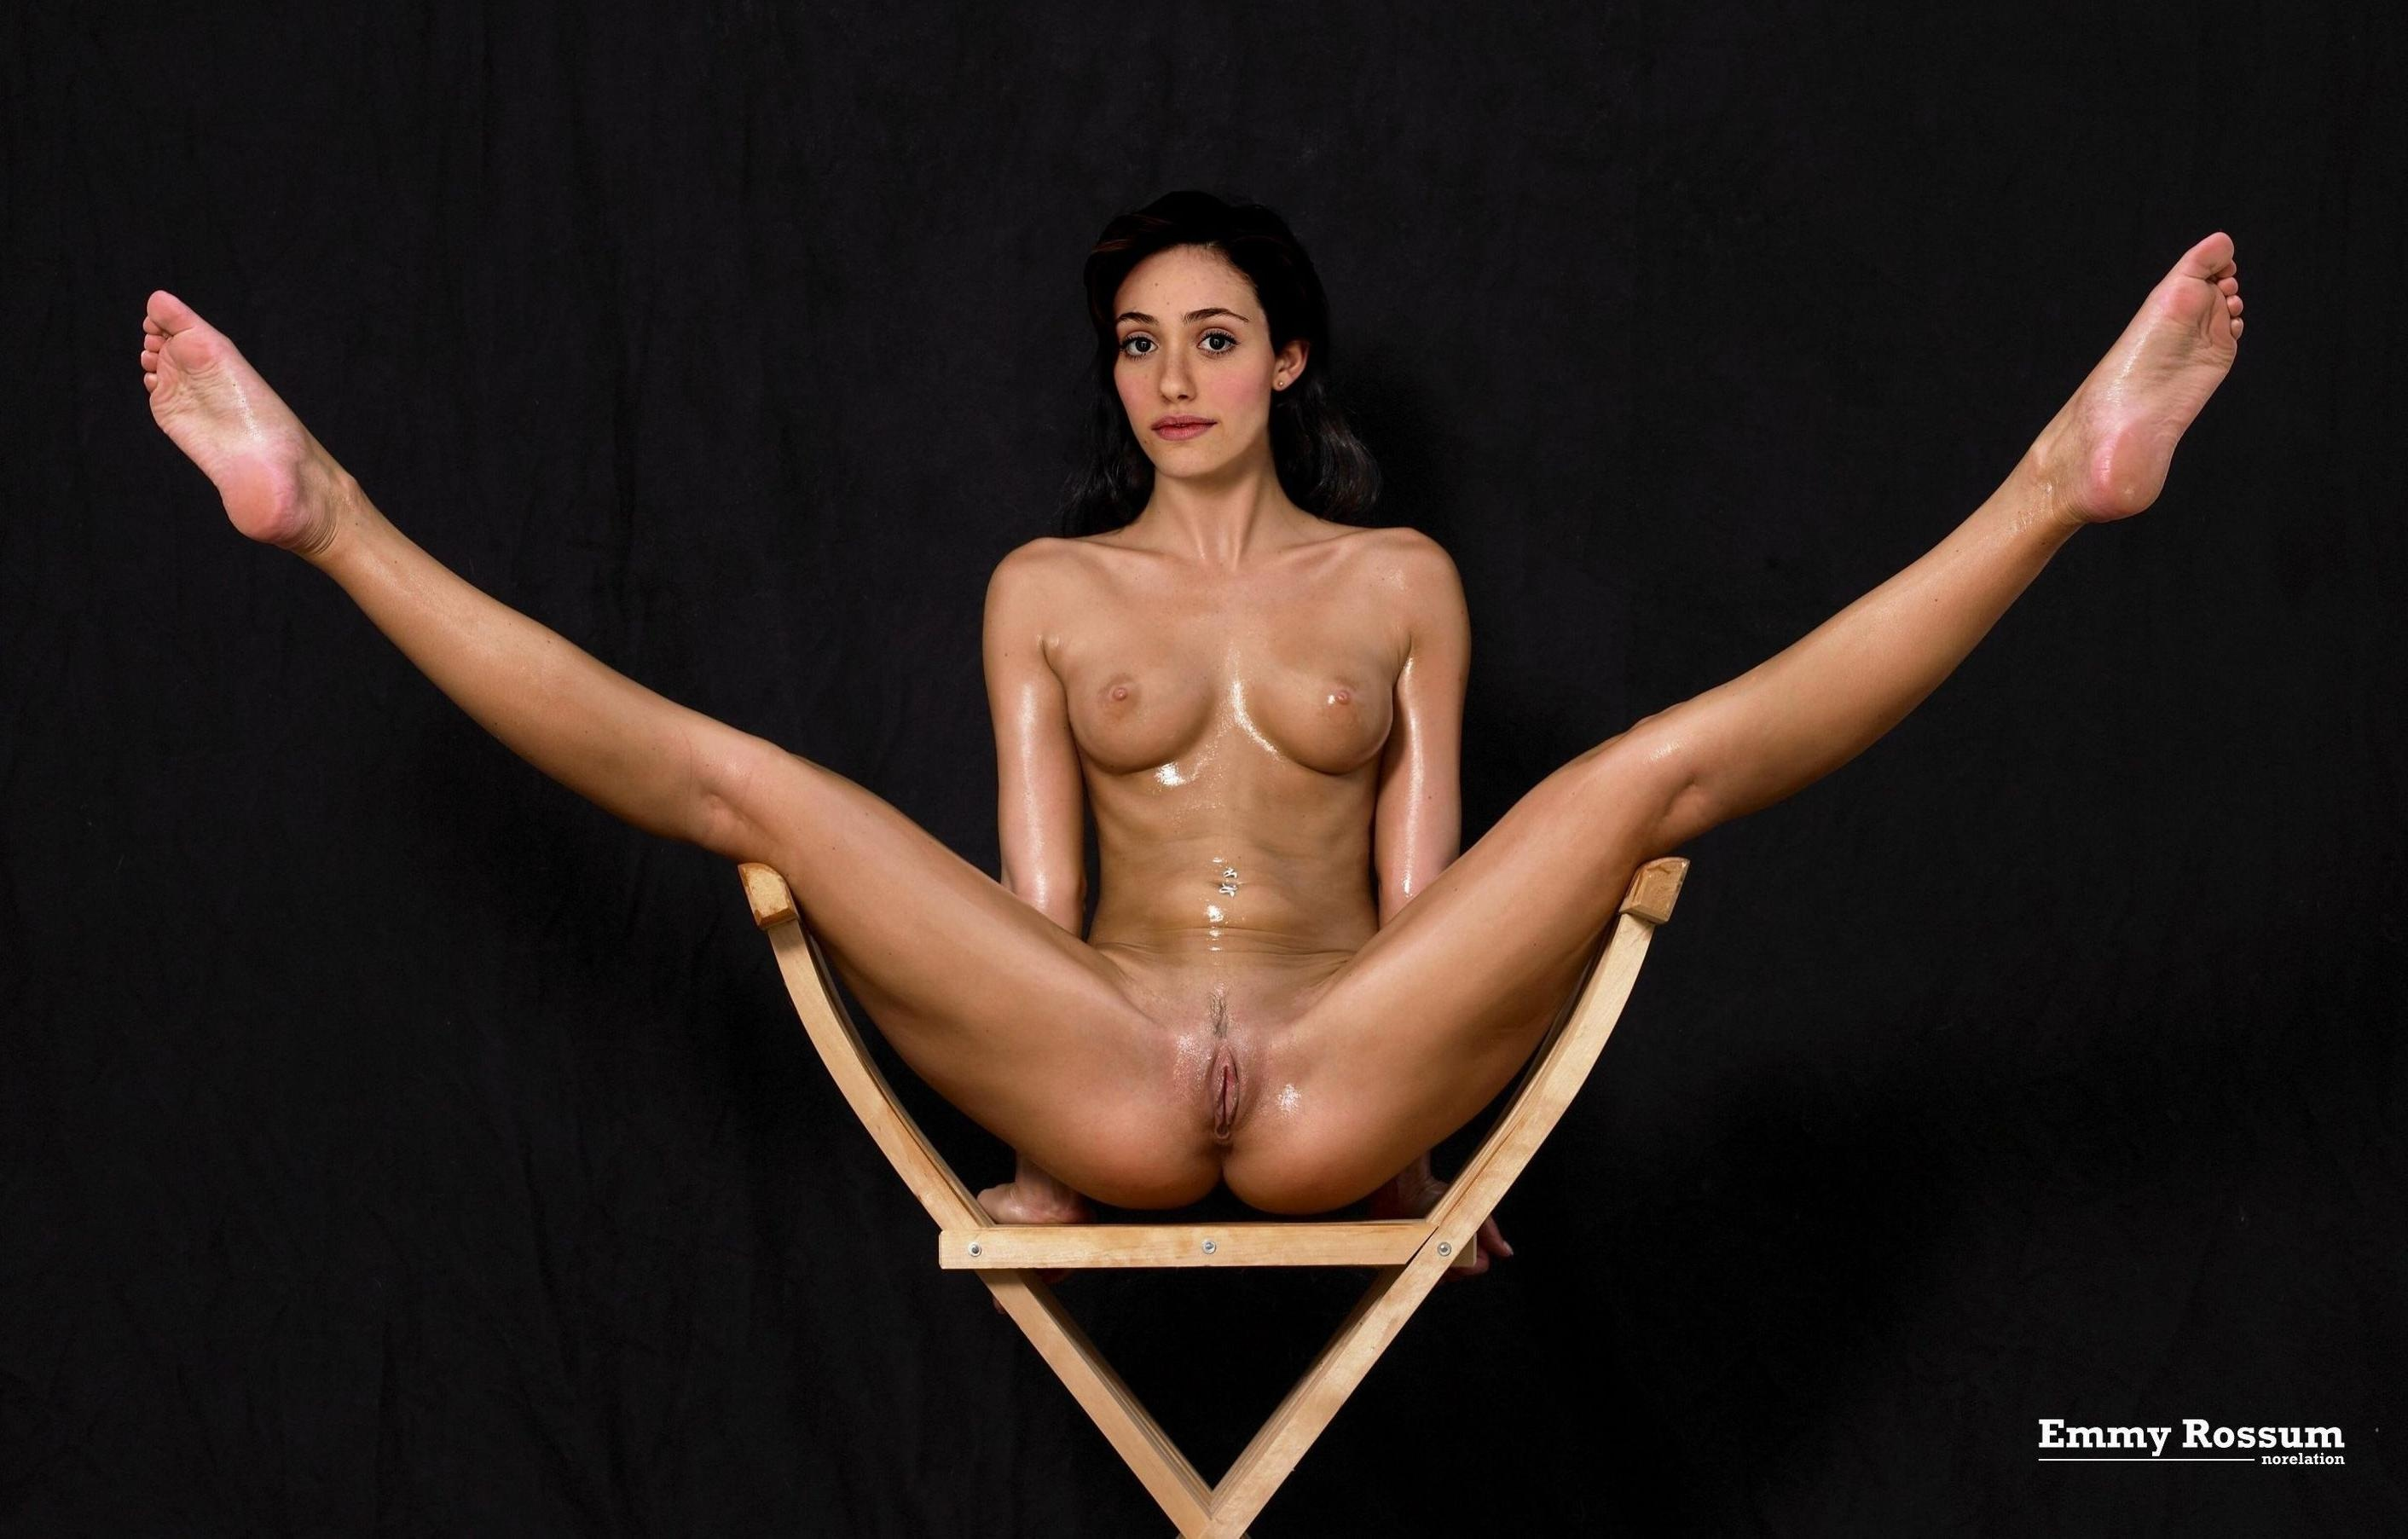 Emmy rossum foto nud have hit